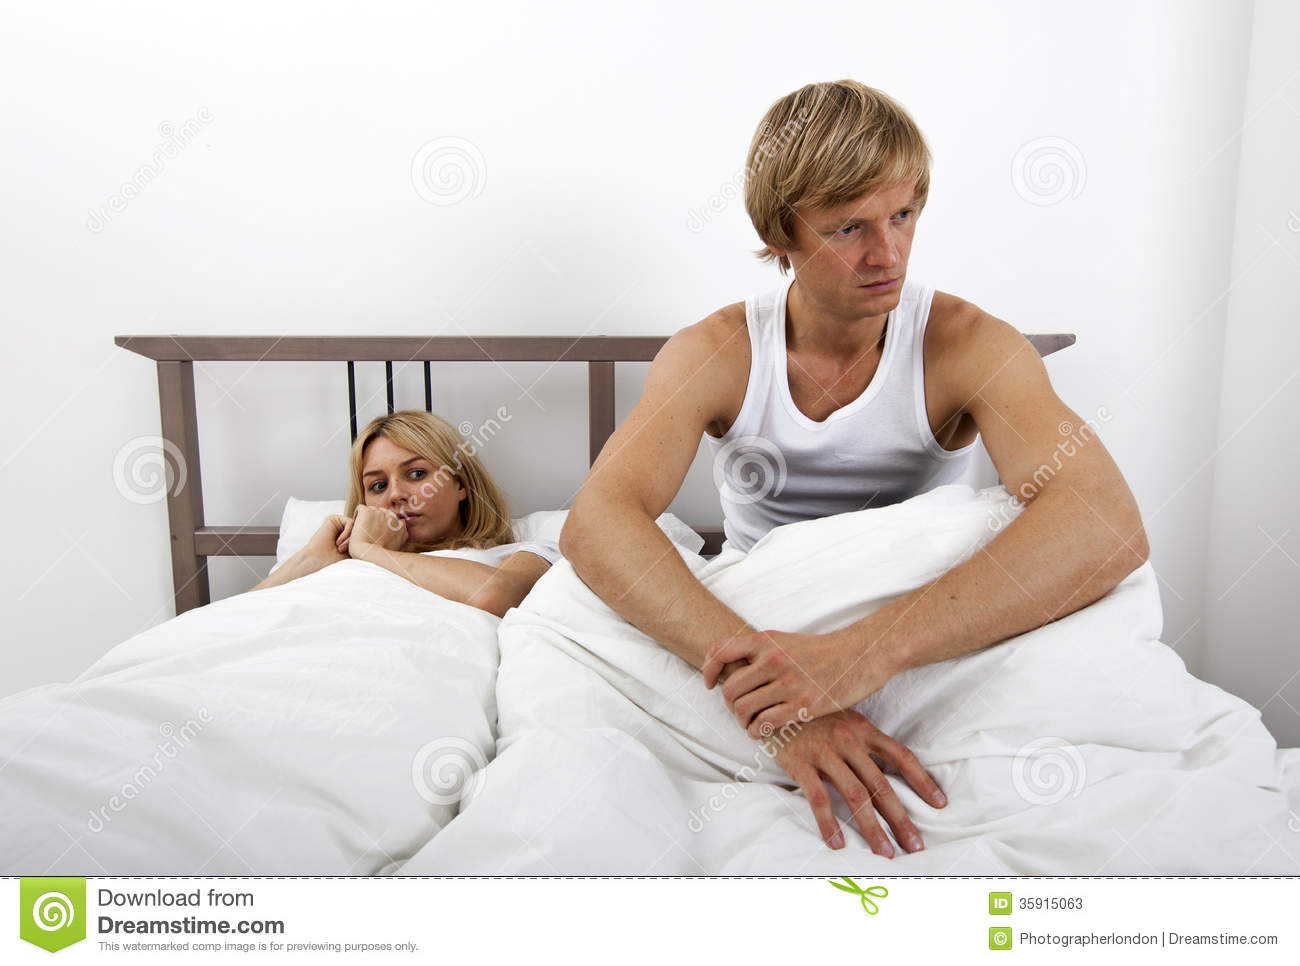 Angry Man Sitting On Bed With Woman In House Stock Image